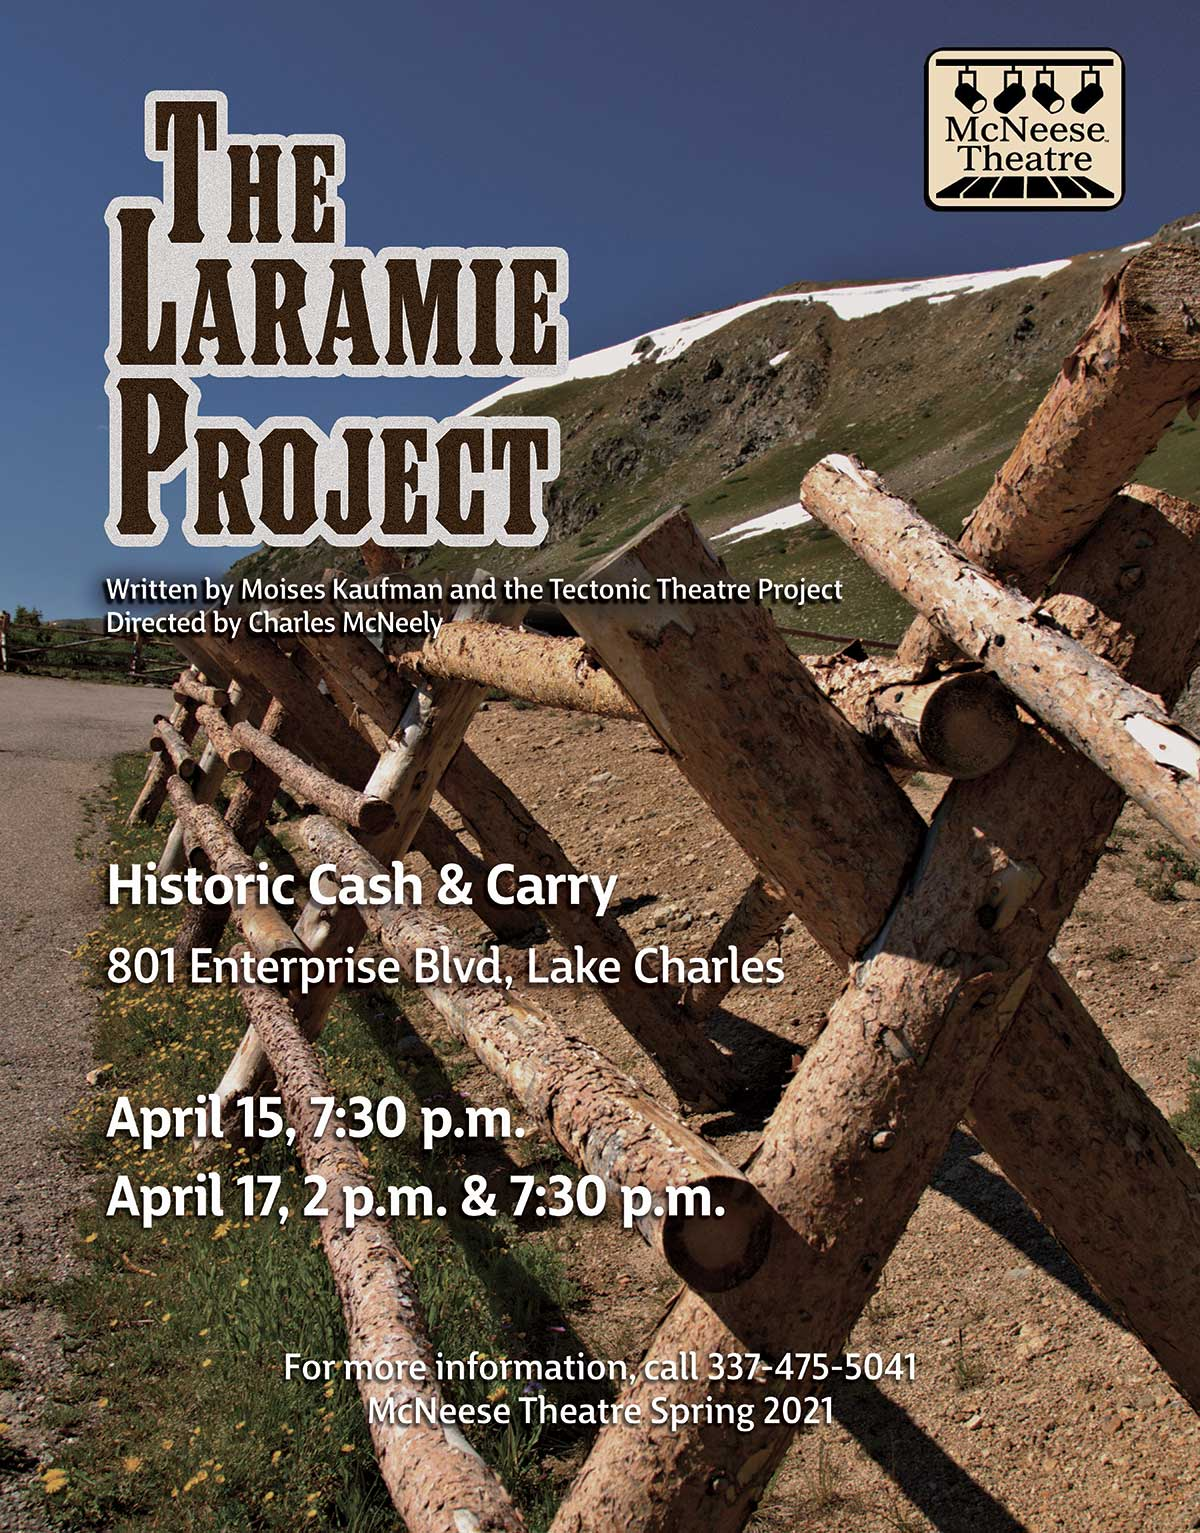 McNeese Spring Theatre presents the Laramie Project